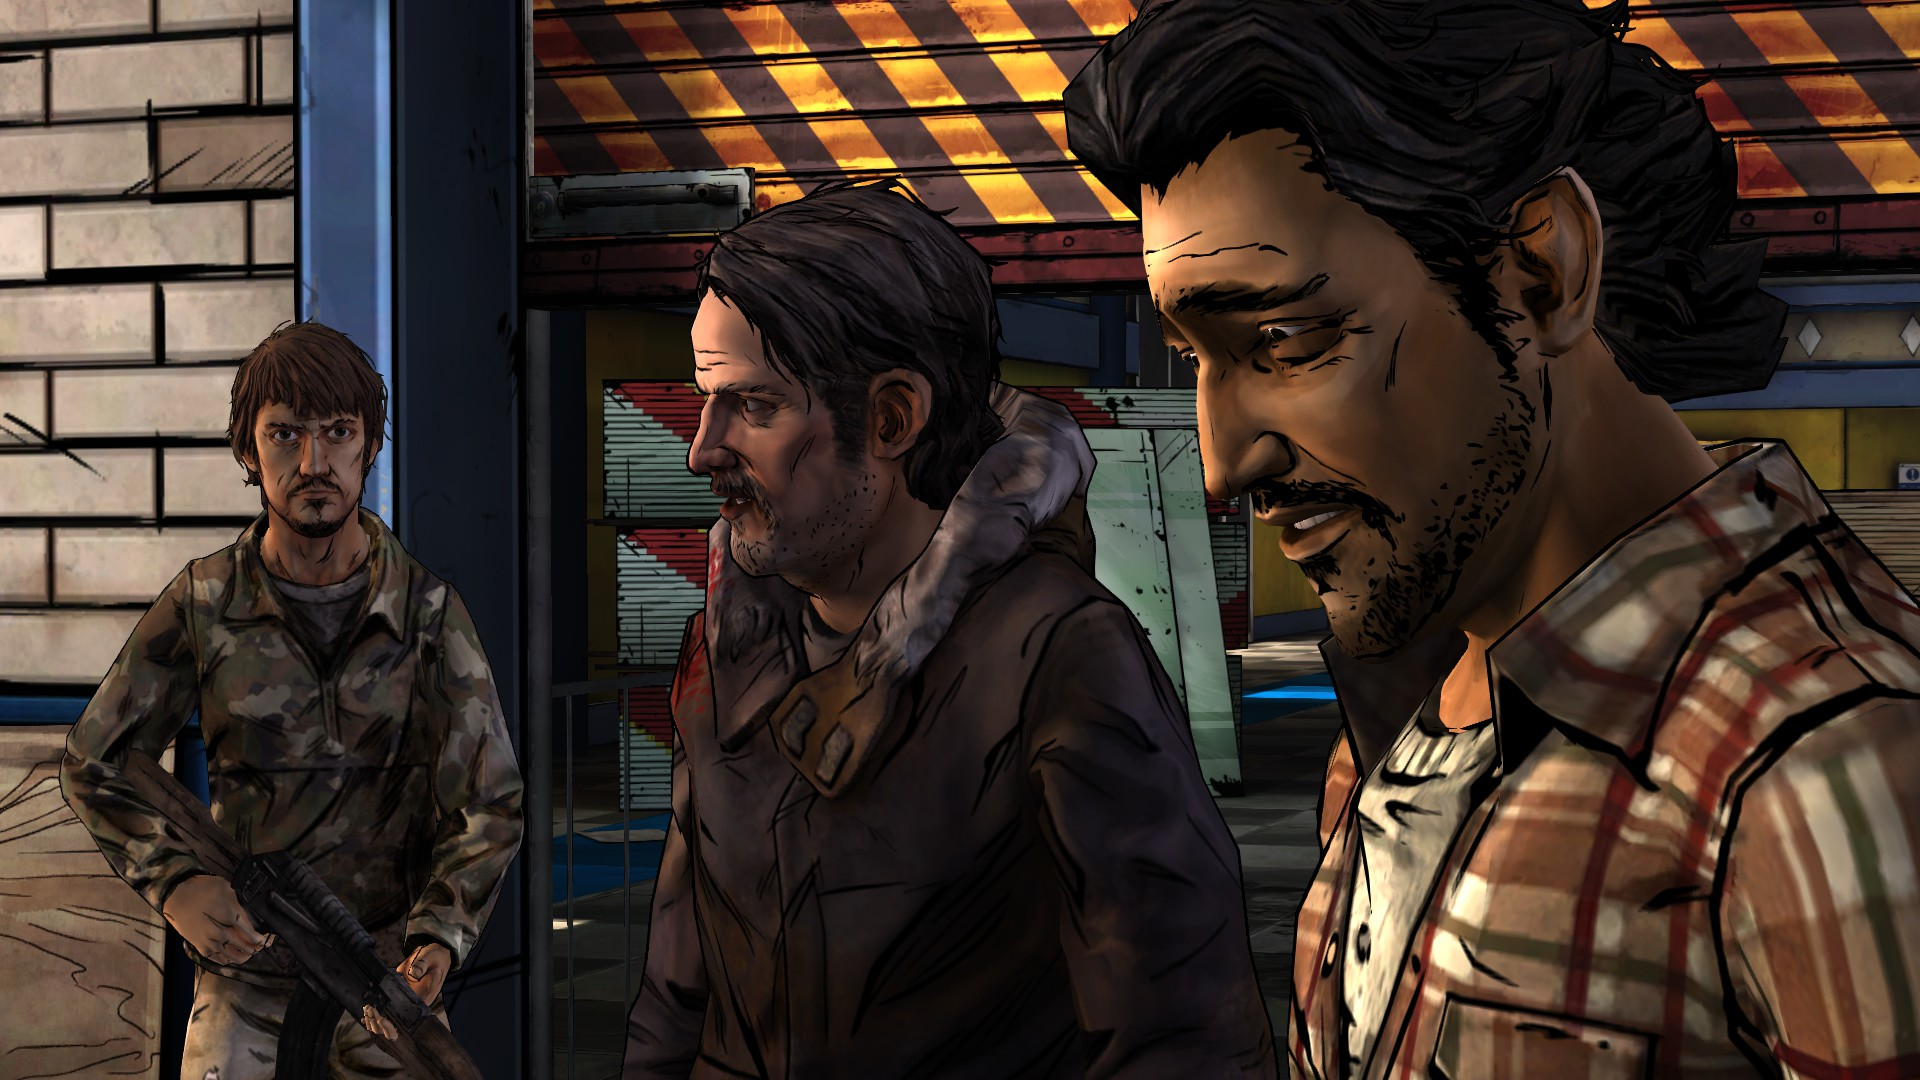 Walking Dead: Season 2 - In Harm's Way